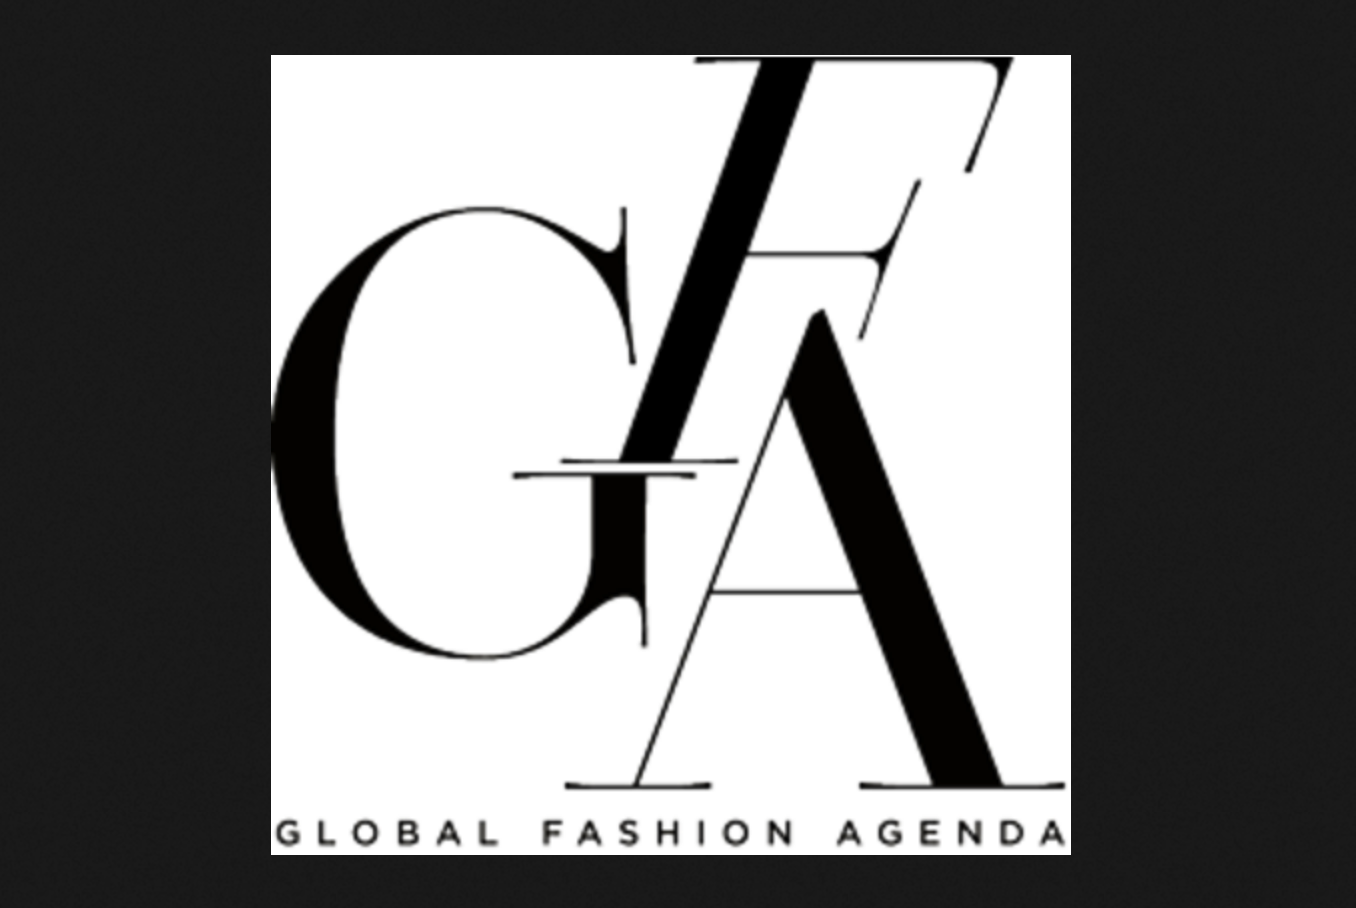 Global Fashion Agenda